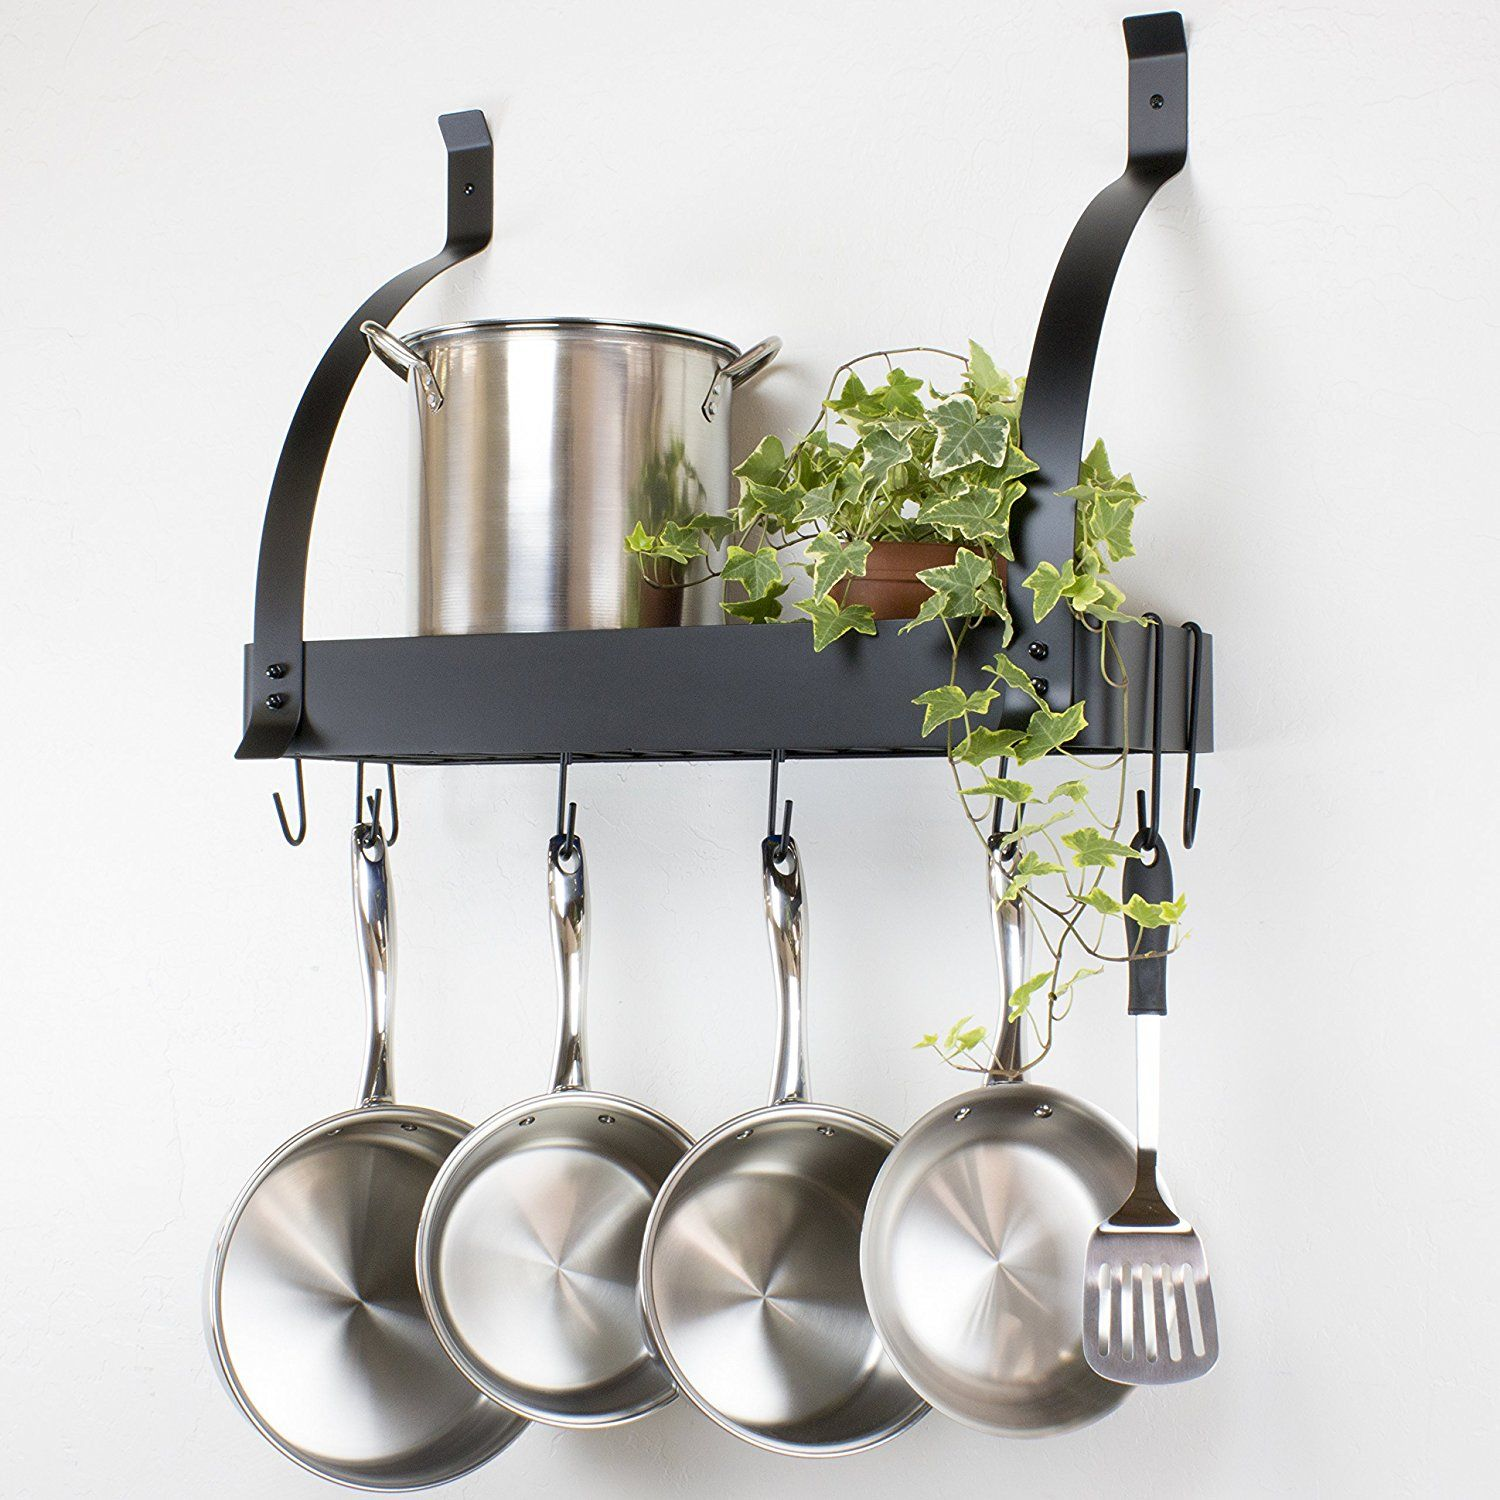 $45 Amazon Contour Essentials Stainless Steel Wall Mounted Endearing Kitchen Pot Rack Design Decoration